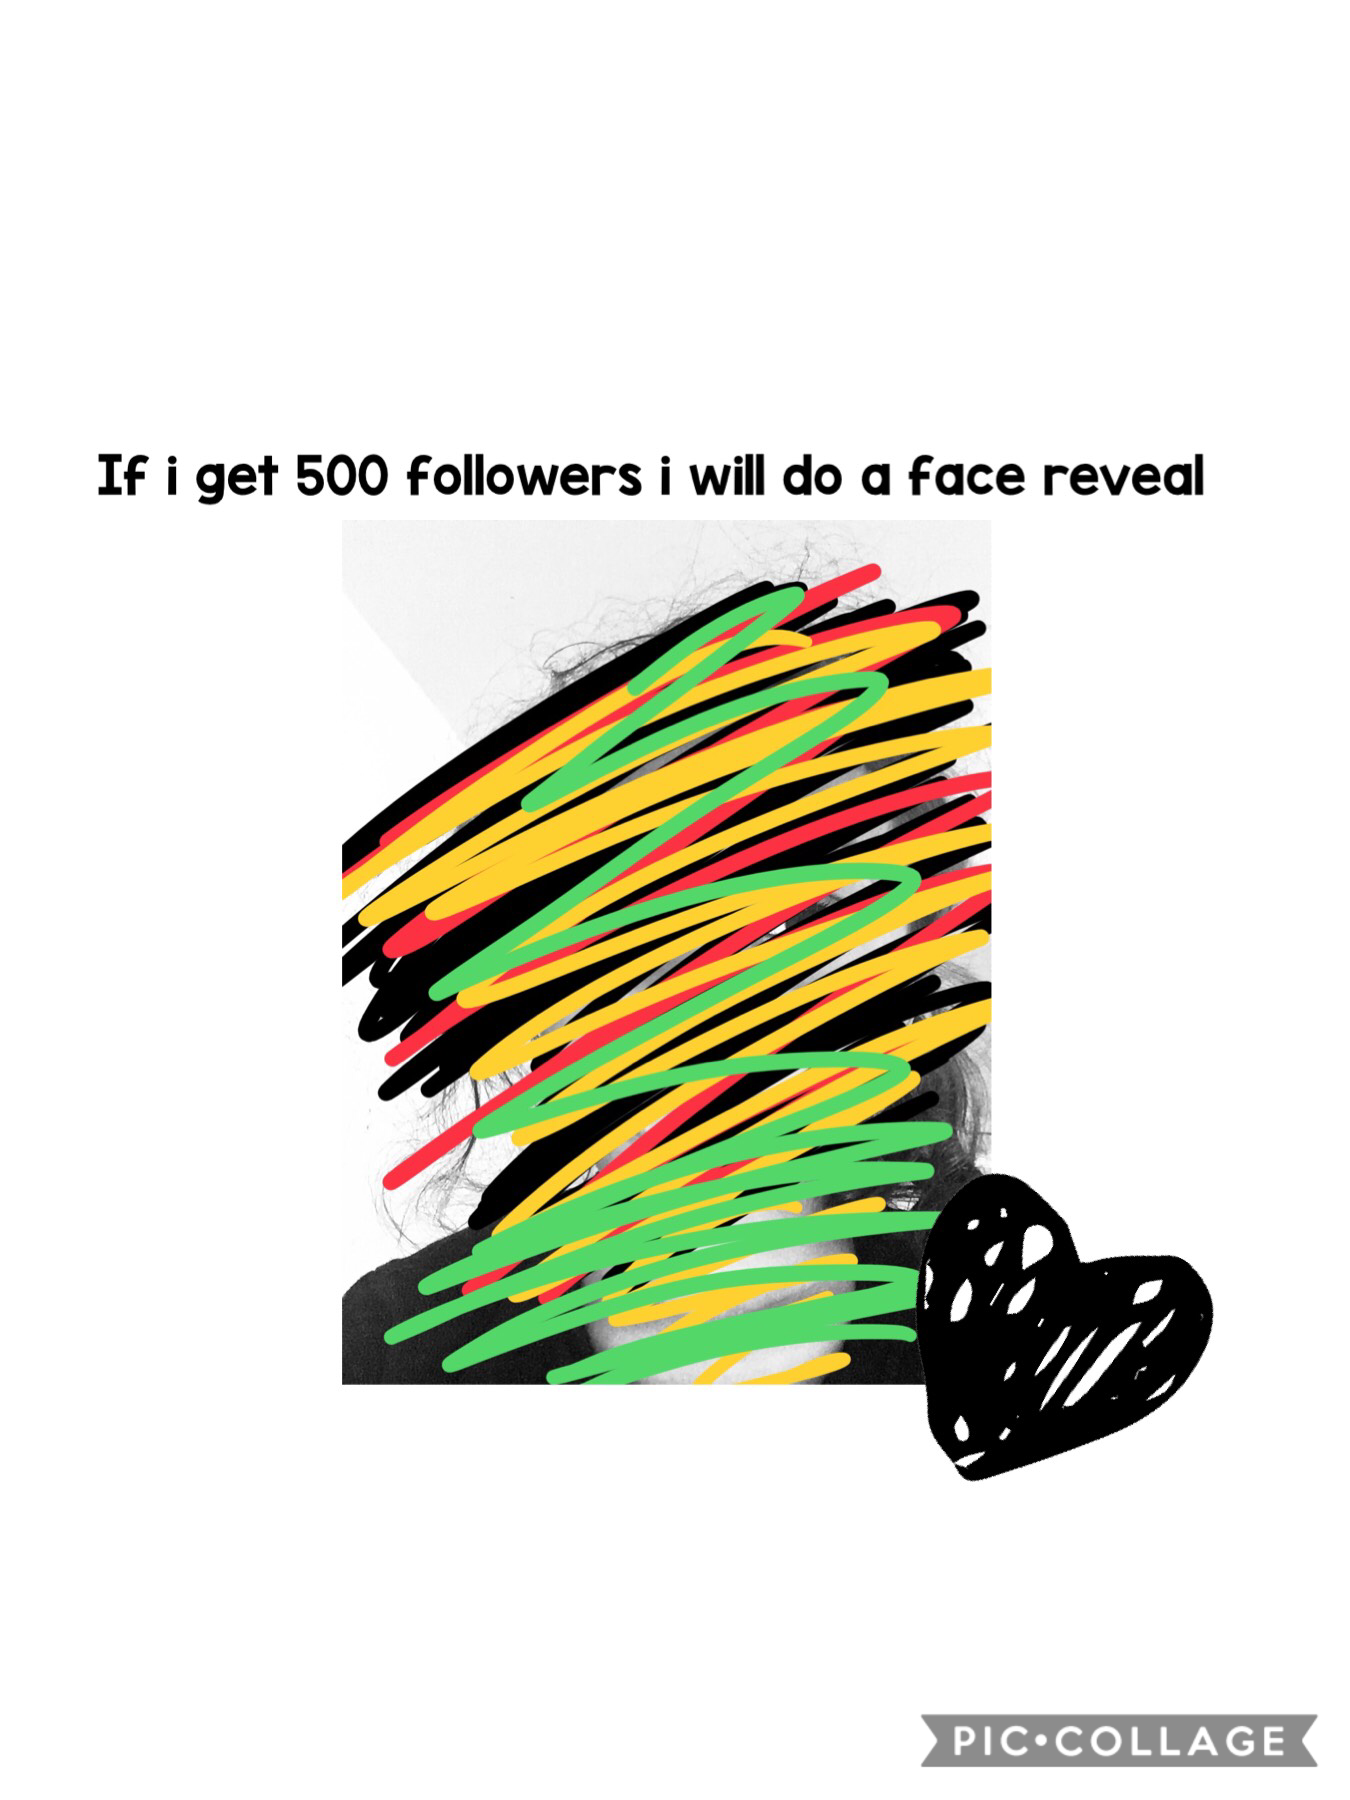 Face reveal only at 500 followers!!?!?